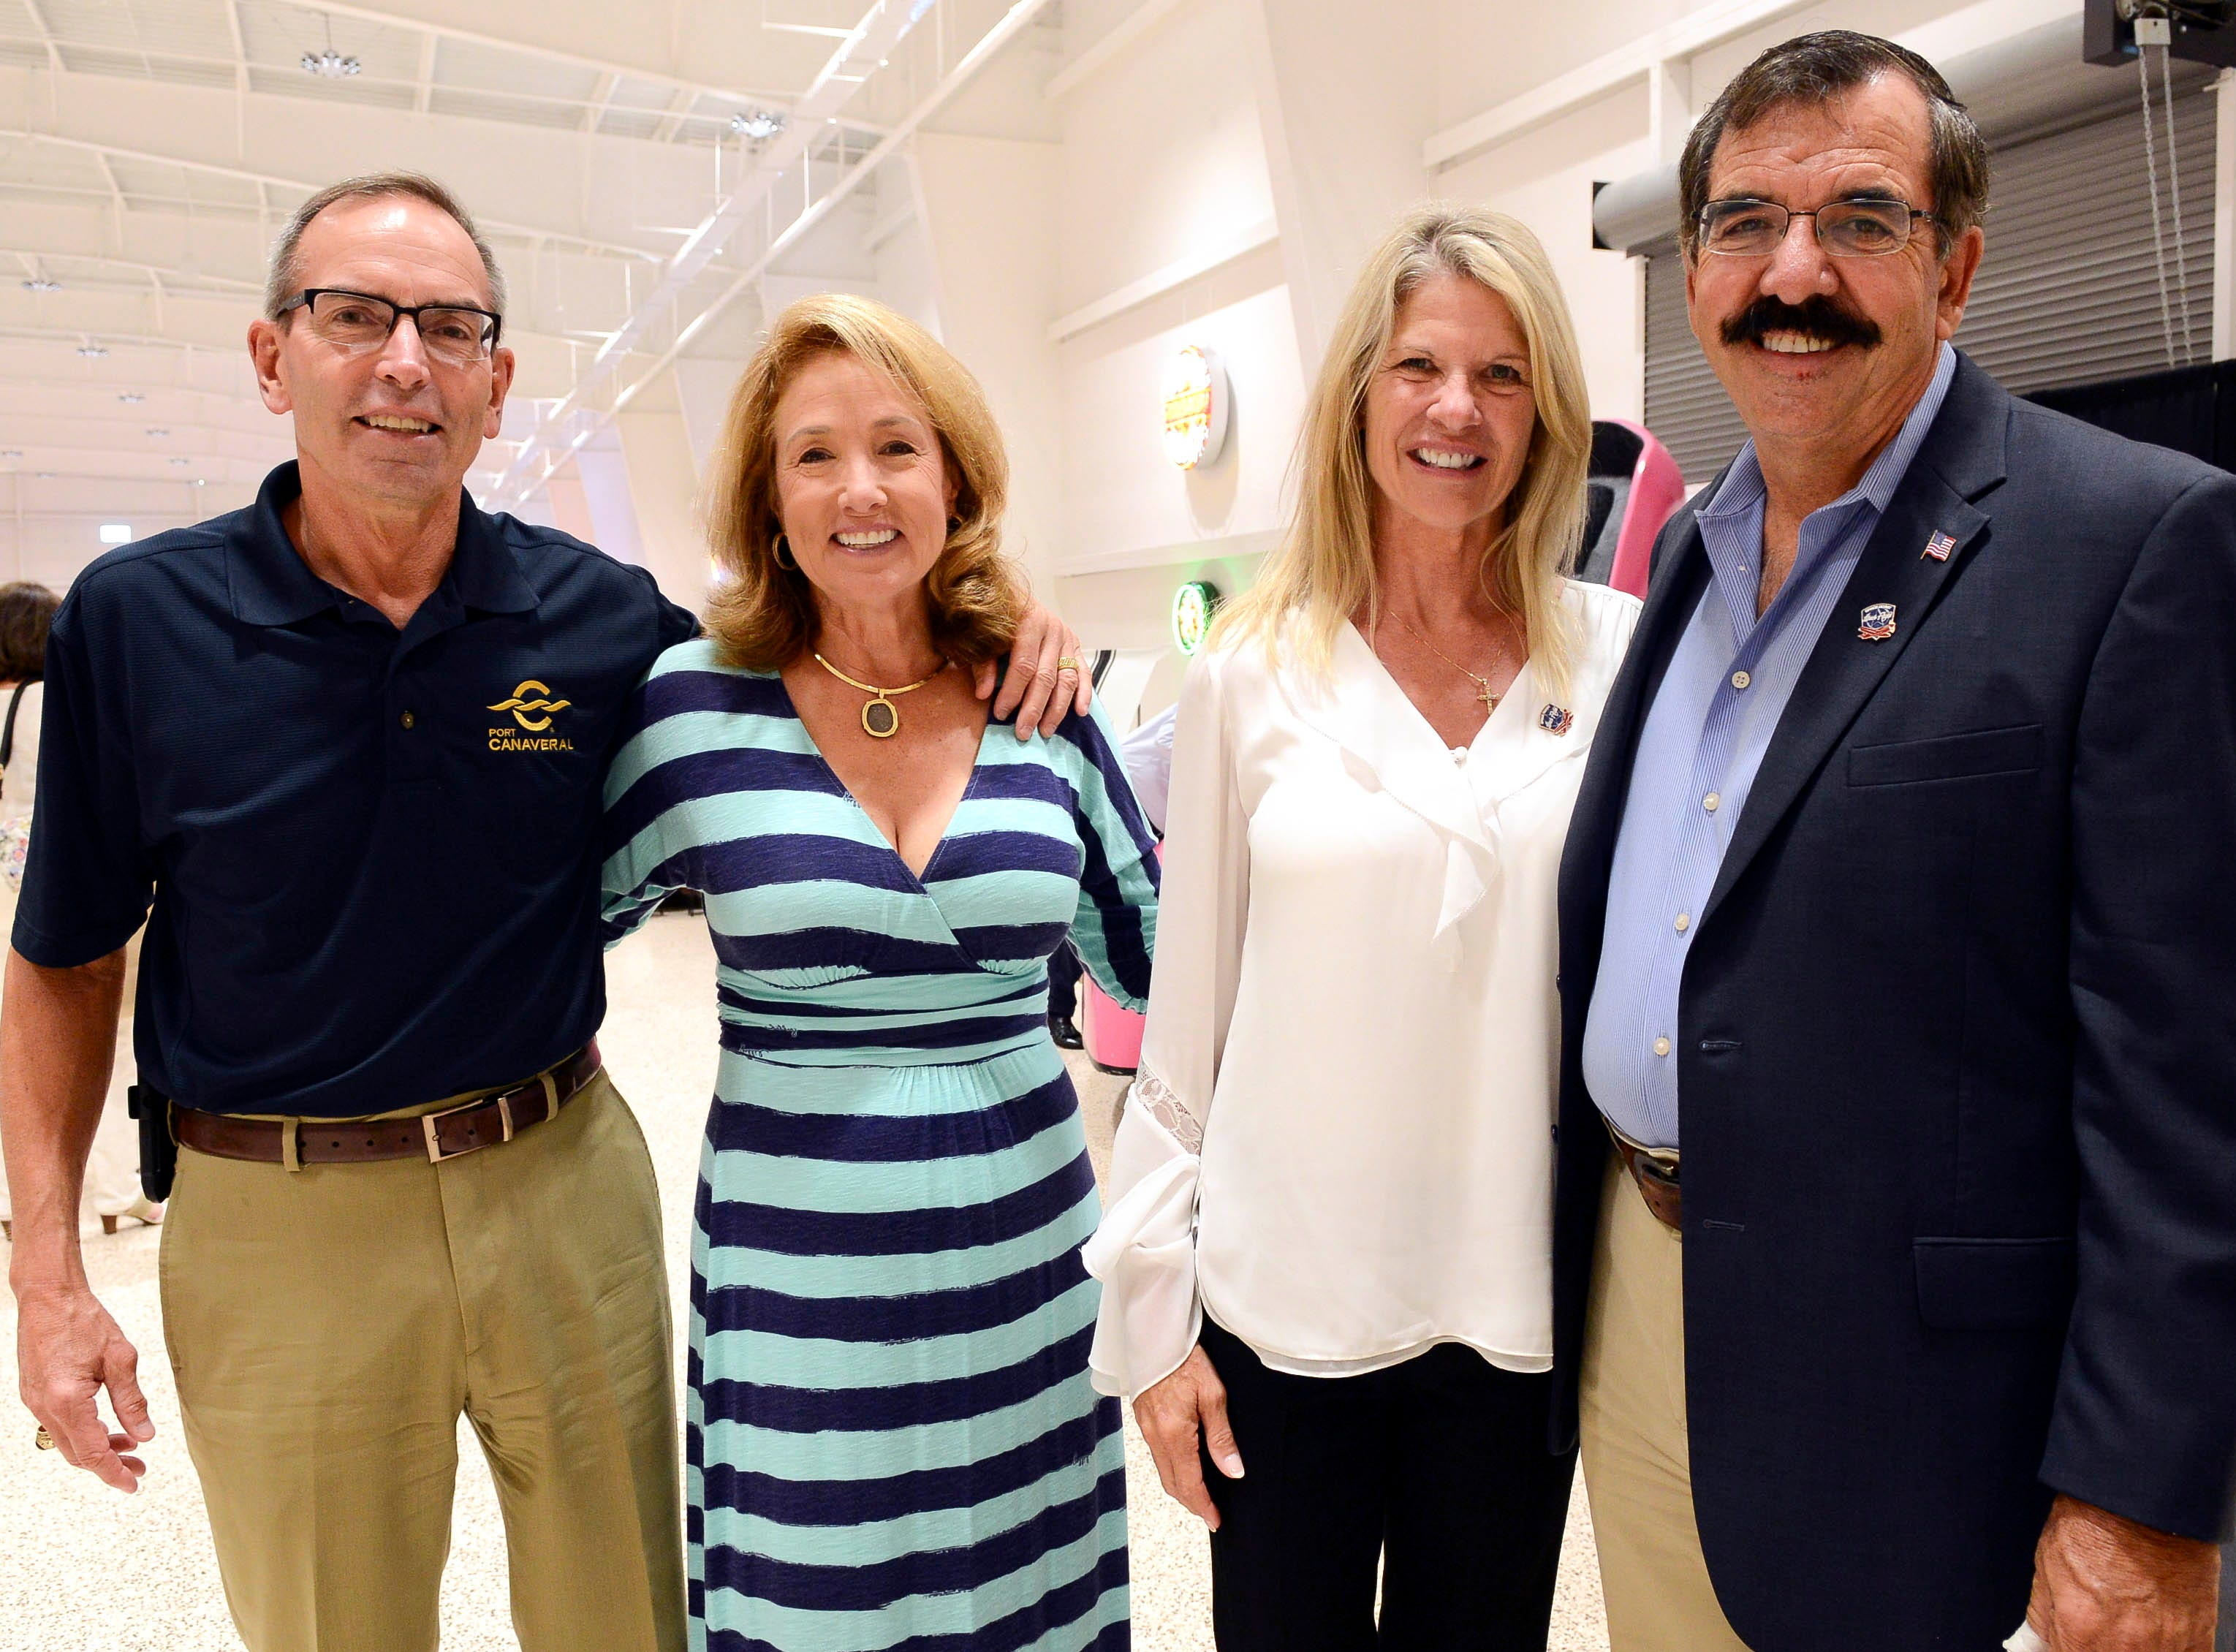 Port Canaveral Commission Chairman Wayne Justice and his wife Barbara and State senator Debbie Mayfield and her husband Bob Scaringe get their picture taken during the Stars and Stripes fundraiser at American Muscle Car Museum. The event was a fundraiser for Space Coast Honor Flight.